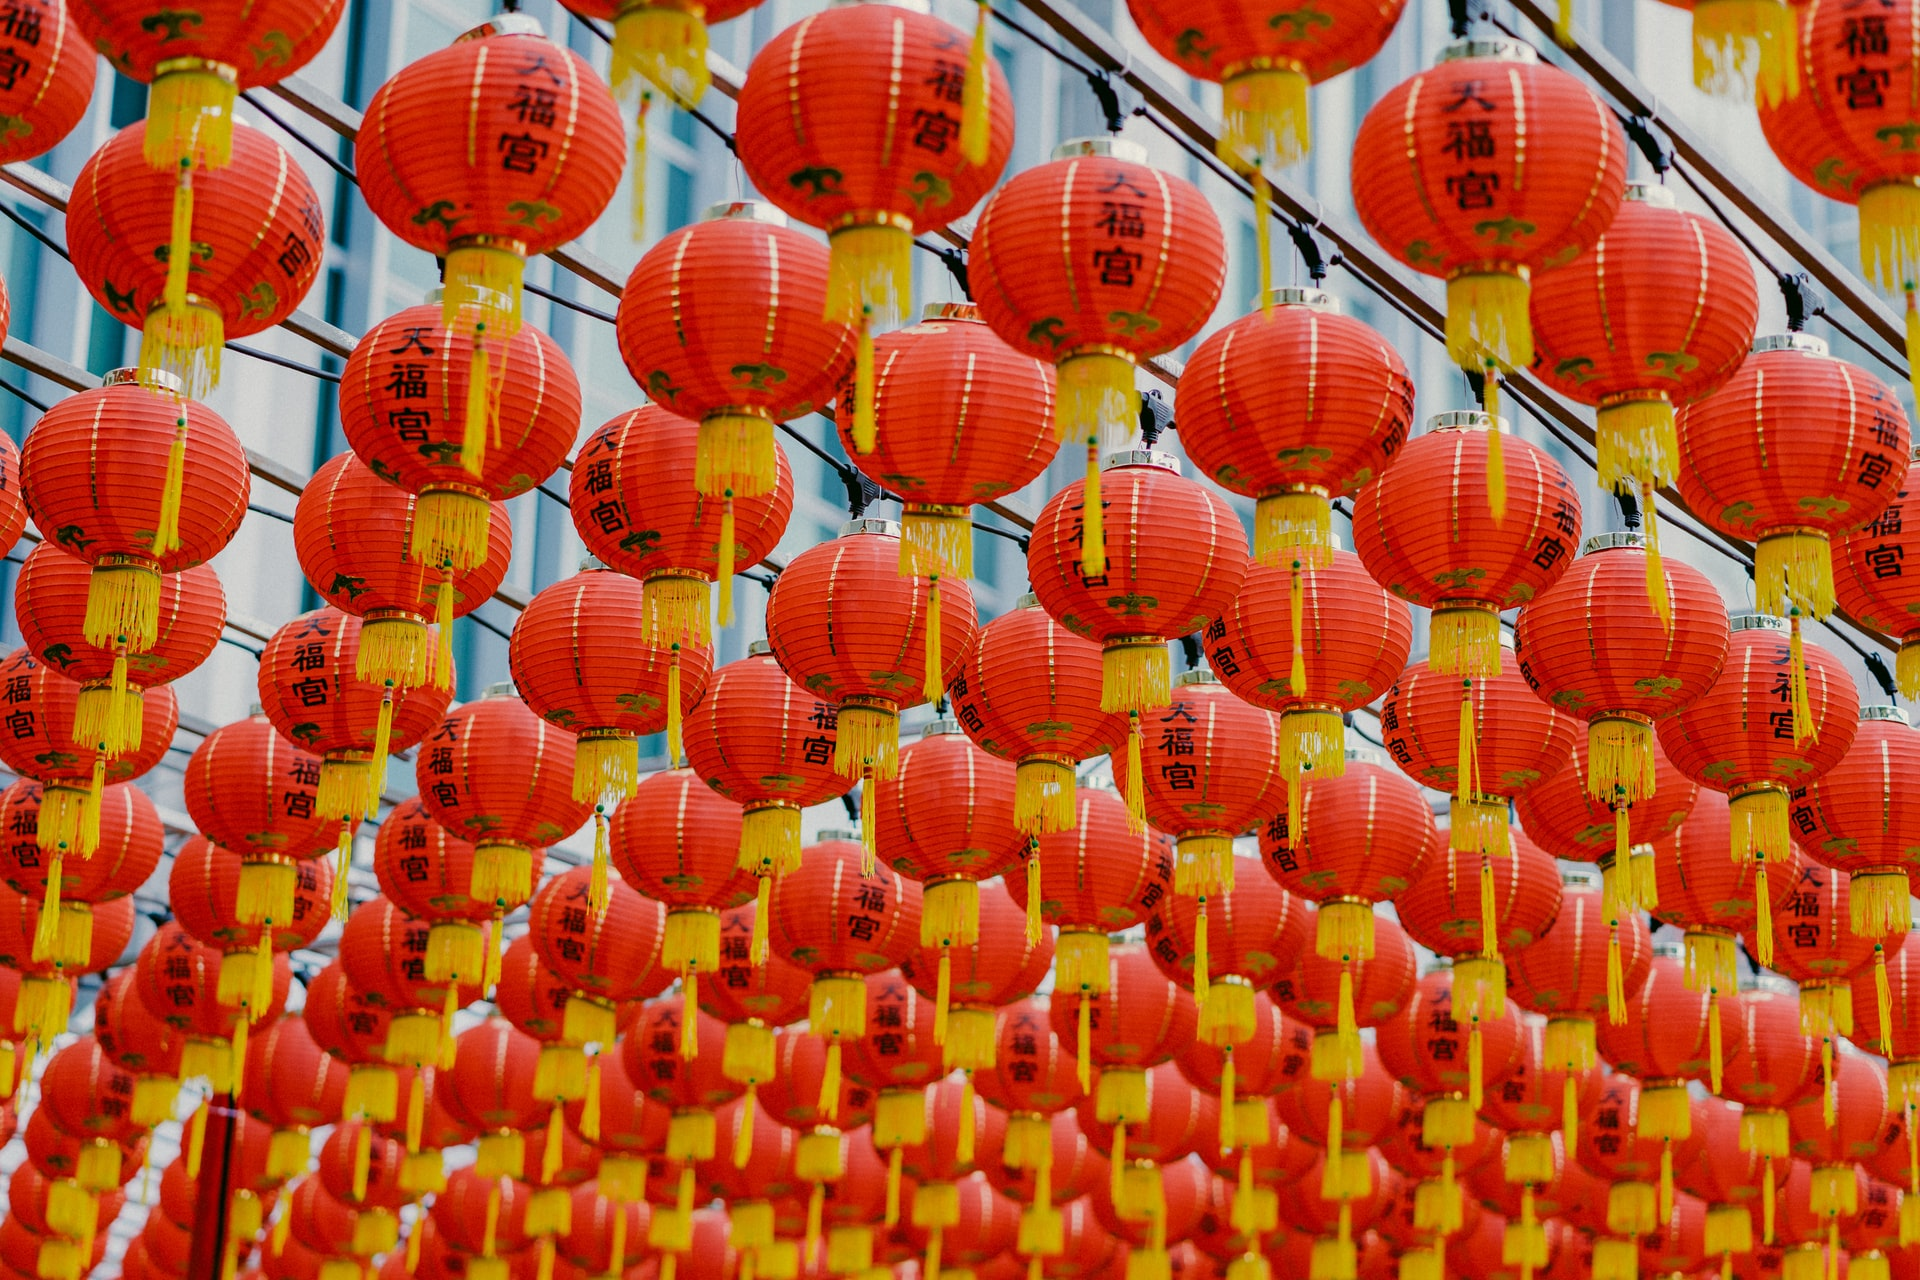 2021, a didfferent kind of CNY